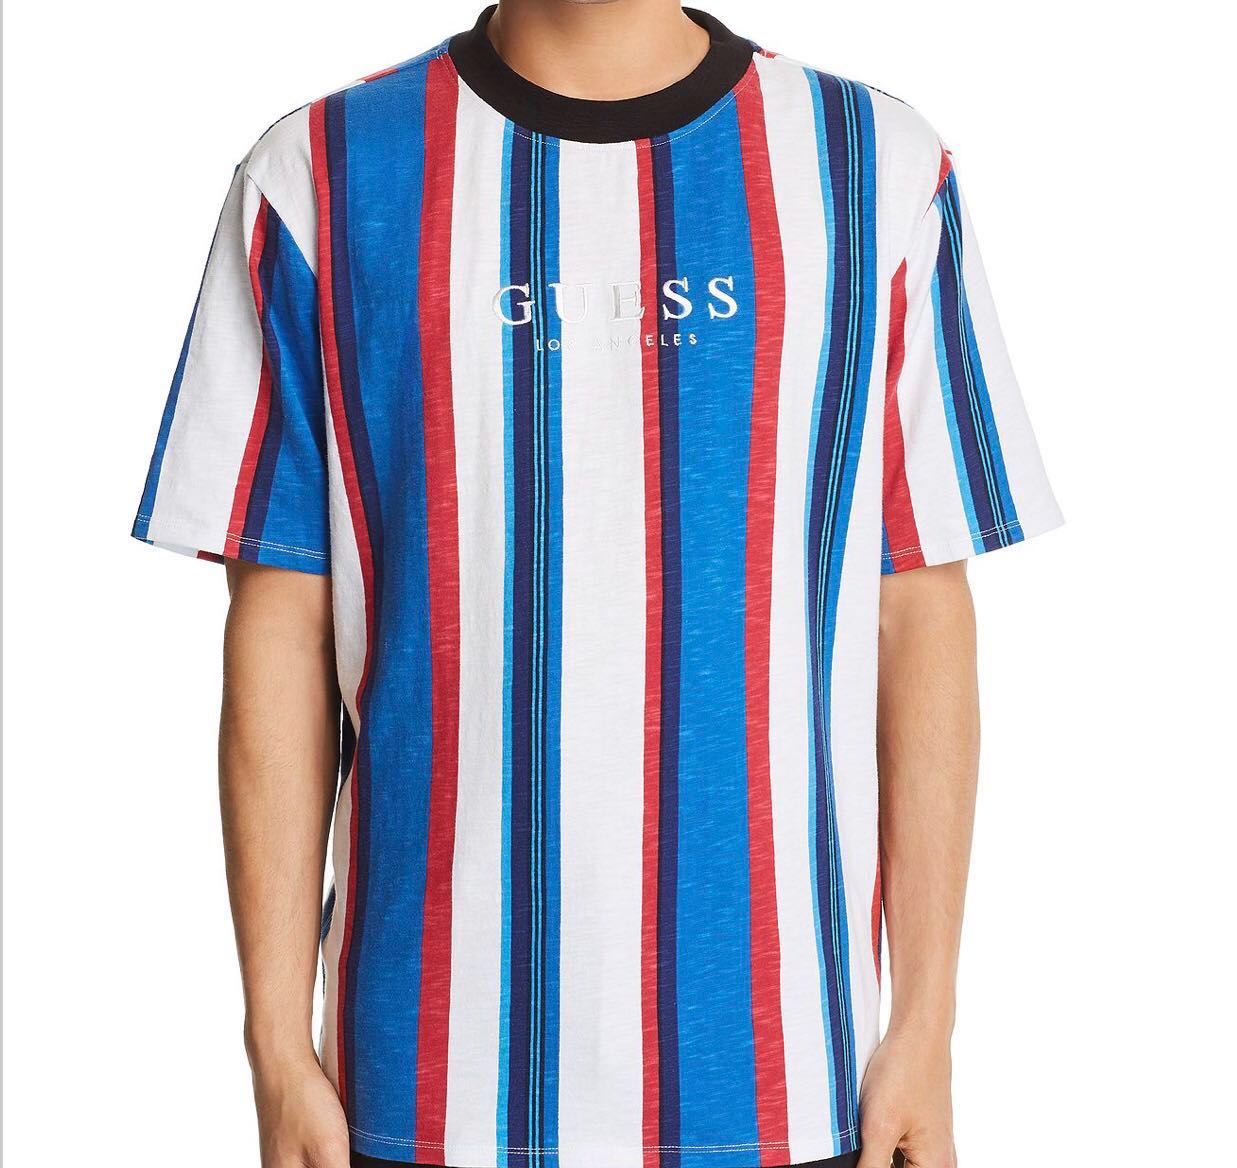 9ba0fa9eb9 LAST DAY* Guess Sayer Striped Tee, Men's Fashion, Clothes, Tops on ...